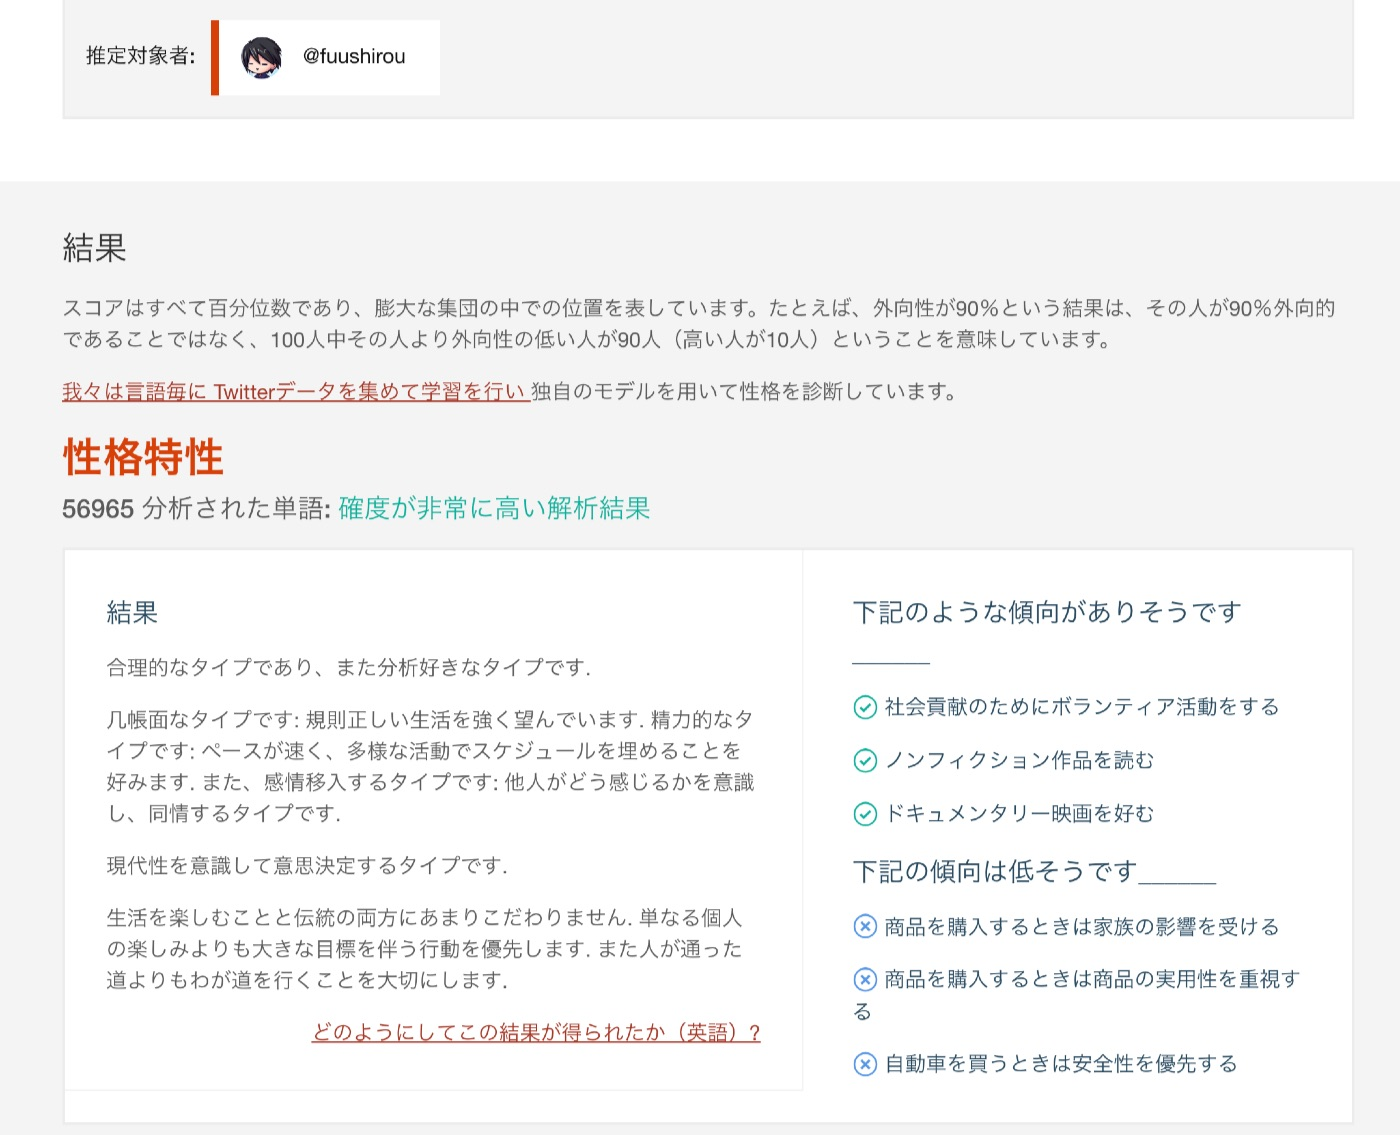 Personality Insights 分析結果